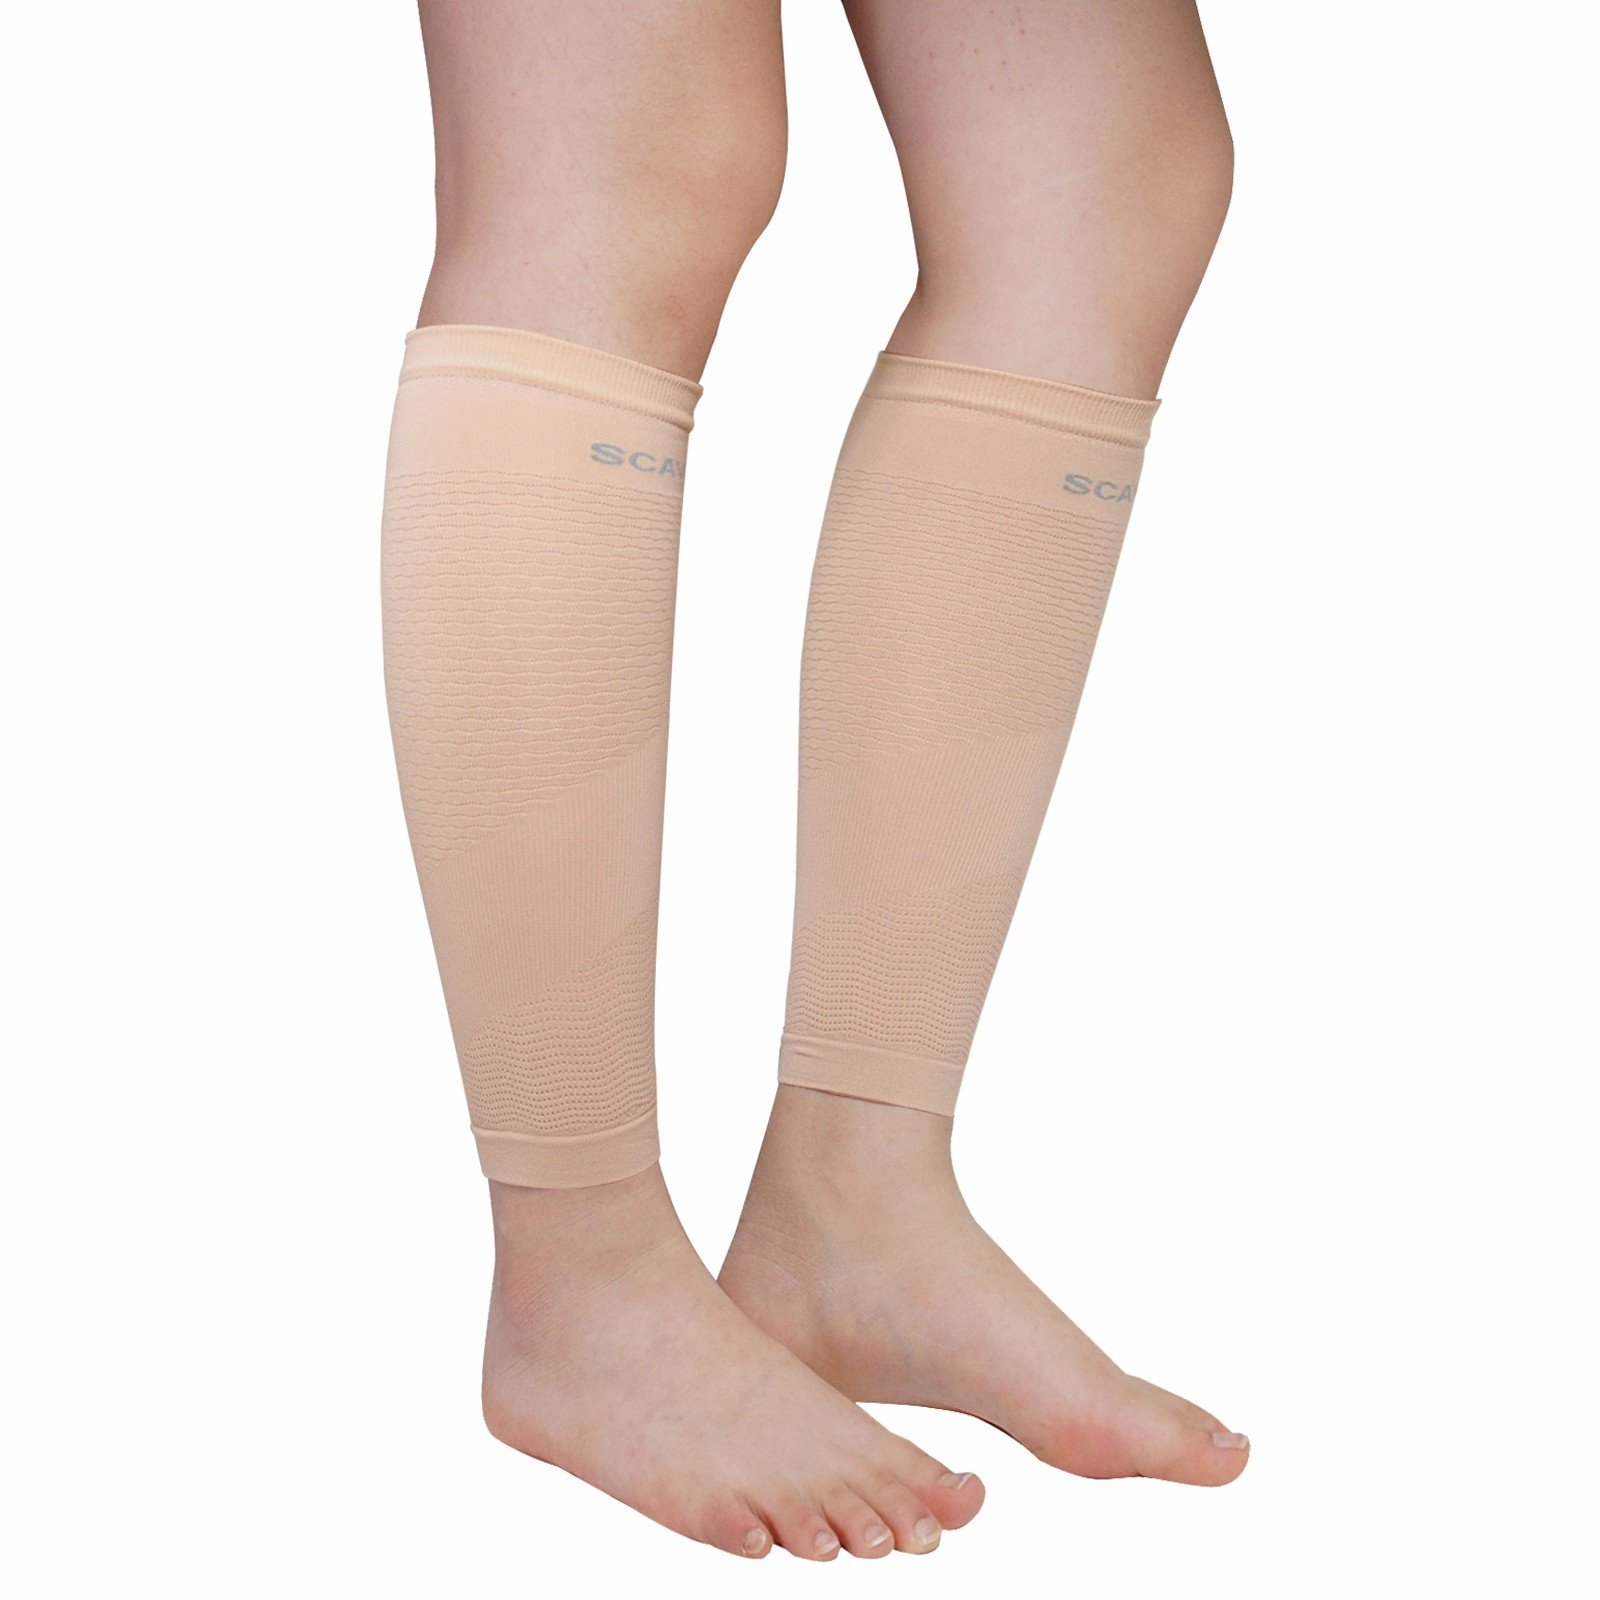 Compression Leg Sleeve Pair for Women Men - Calf Shin Support for Shin Splints and Calf Pain Relief Basketball Running Enhance Blood Circulation Two Pieces (Ivory)